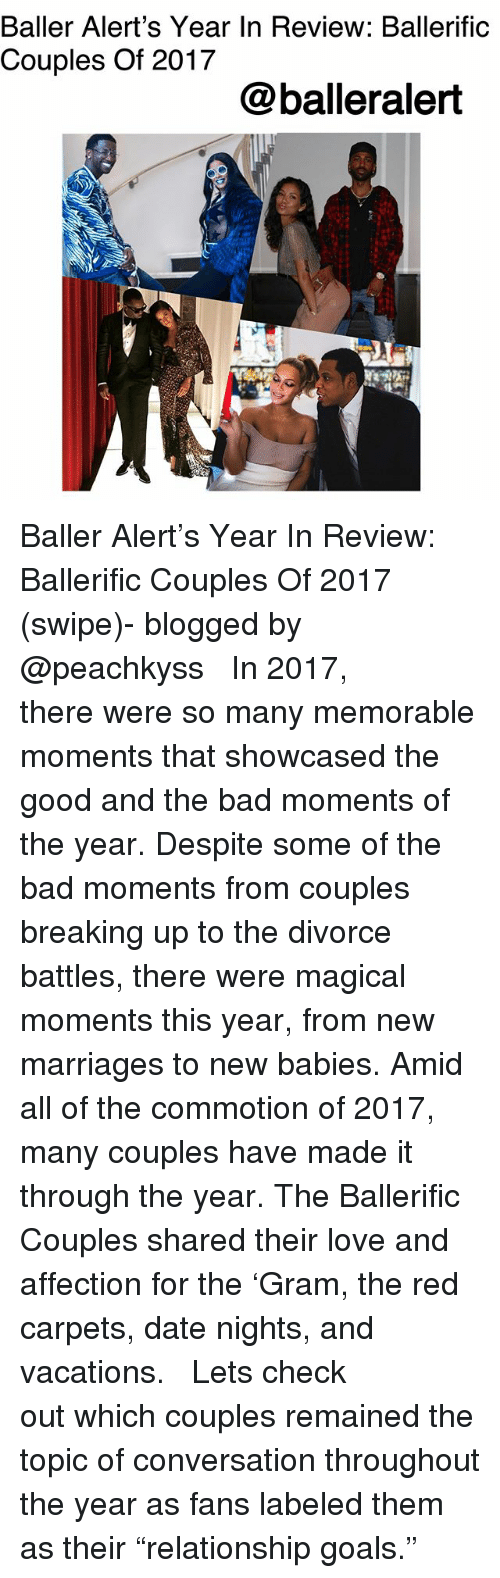 """Bad, Baller Alert, and Goals: Baller Alert's Year In Review: Ballerific  Couples Of 2017  @balleralert Baller Alert's Year In Review: Ballerific Couples Of 2017 (swipe)- blogged by @peachkyss ⠀⠀⠀⠀⠀⠀⠀ ⠀⠀⠀⠀⠀⠀⠀ In 2017, there were so many memorable moments that showcased the good and the bad moments of the year. Despite some of the bad moments from couples breaking up to the divorce battles, there were magical moments this year, from new marriages to new babies. Amid all of the commotion of 2017, many couples have made it through the year. The Ballerific Couples shared their love and affection for the 'Gram, the red carpets, date nights, and vacations. ⠀⠀⠀⠀⠀⠀⠀ ⠀⠀⠀⠀⠀⠀⠀ Lets check out which couples remained the topic of conversation throughout the year as fans labeled them as their """"relationship goals."""""""